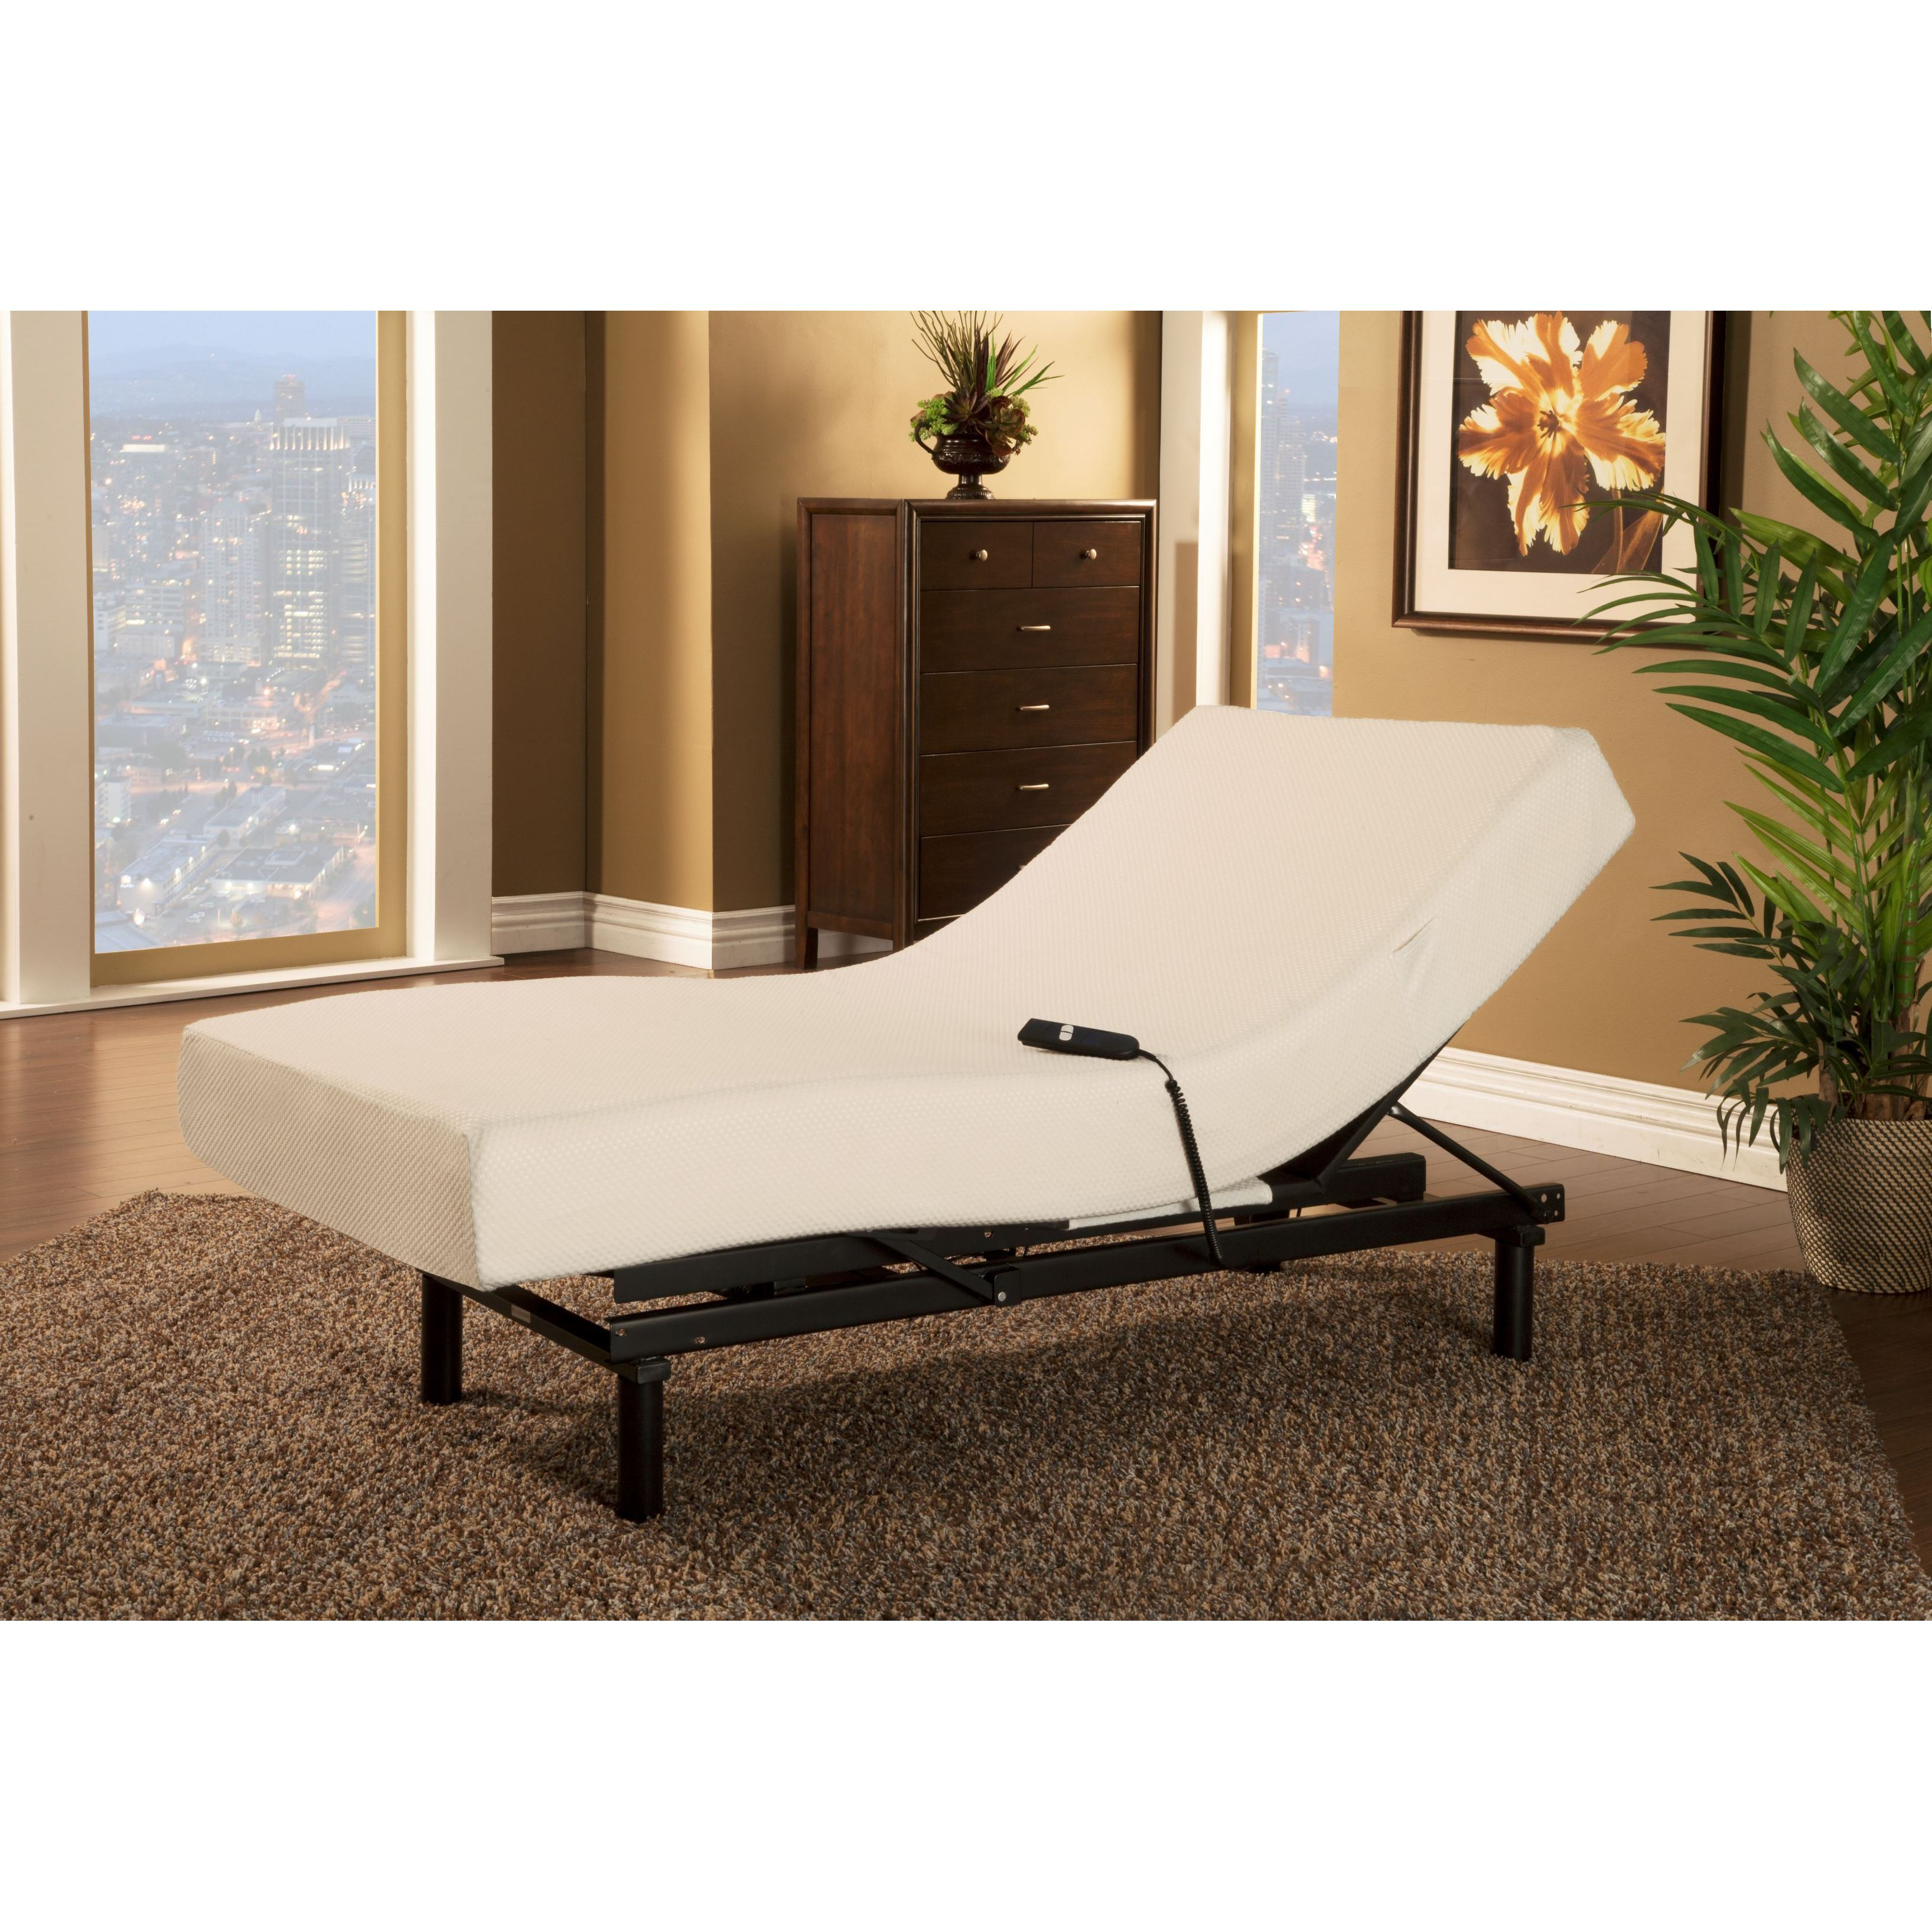 Twin Xl Mattress For Adjustable Bed Full Size Bed